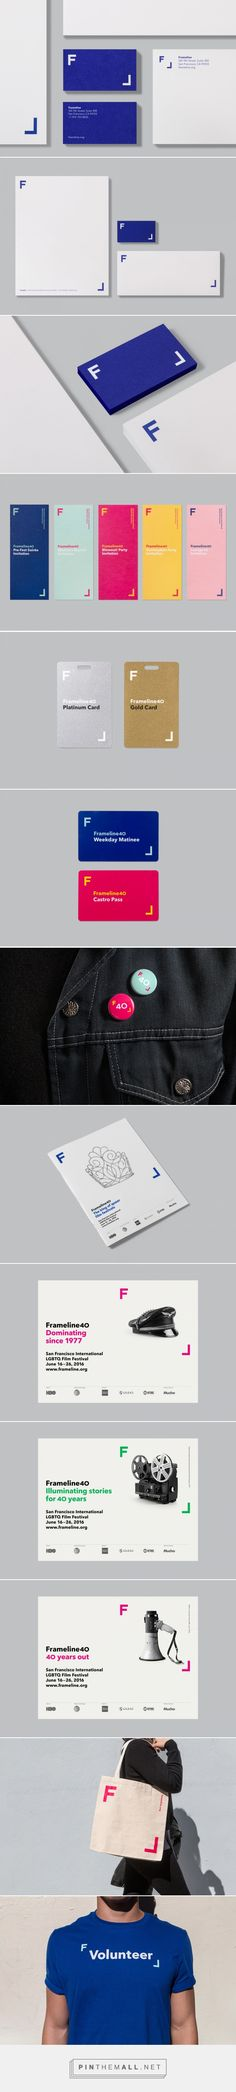 New Brand Identity for Frameline 40 by Mucho — BP&O - created via https://pinthemall.net